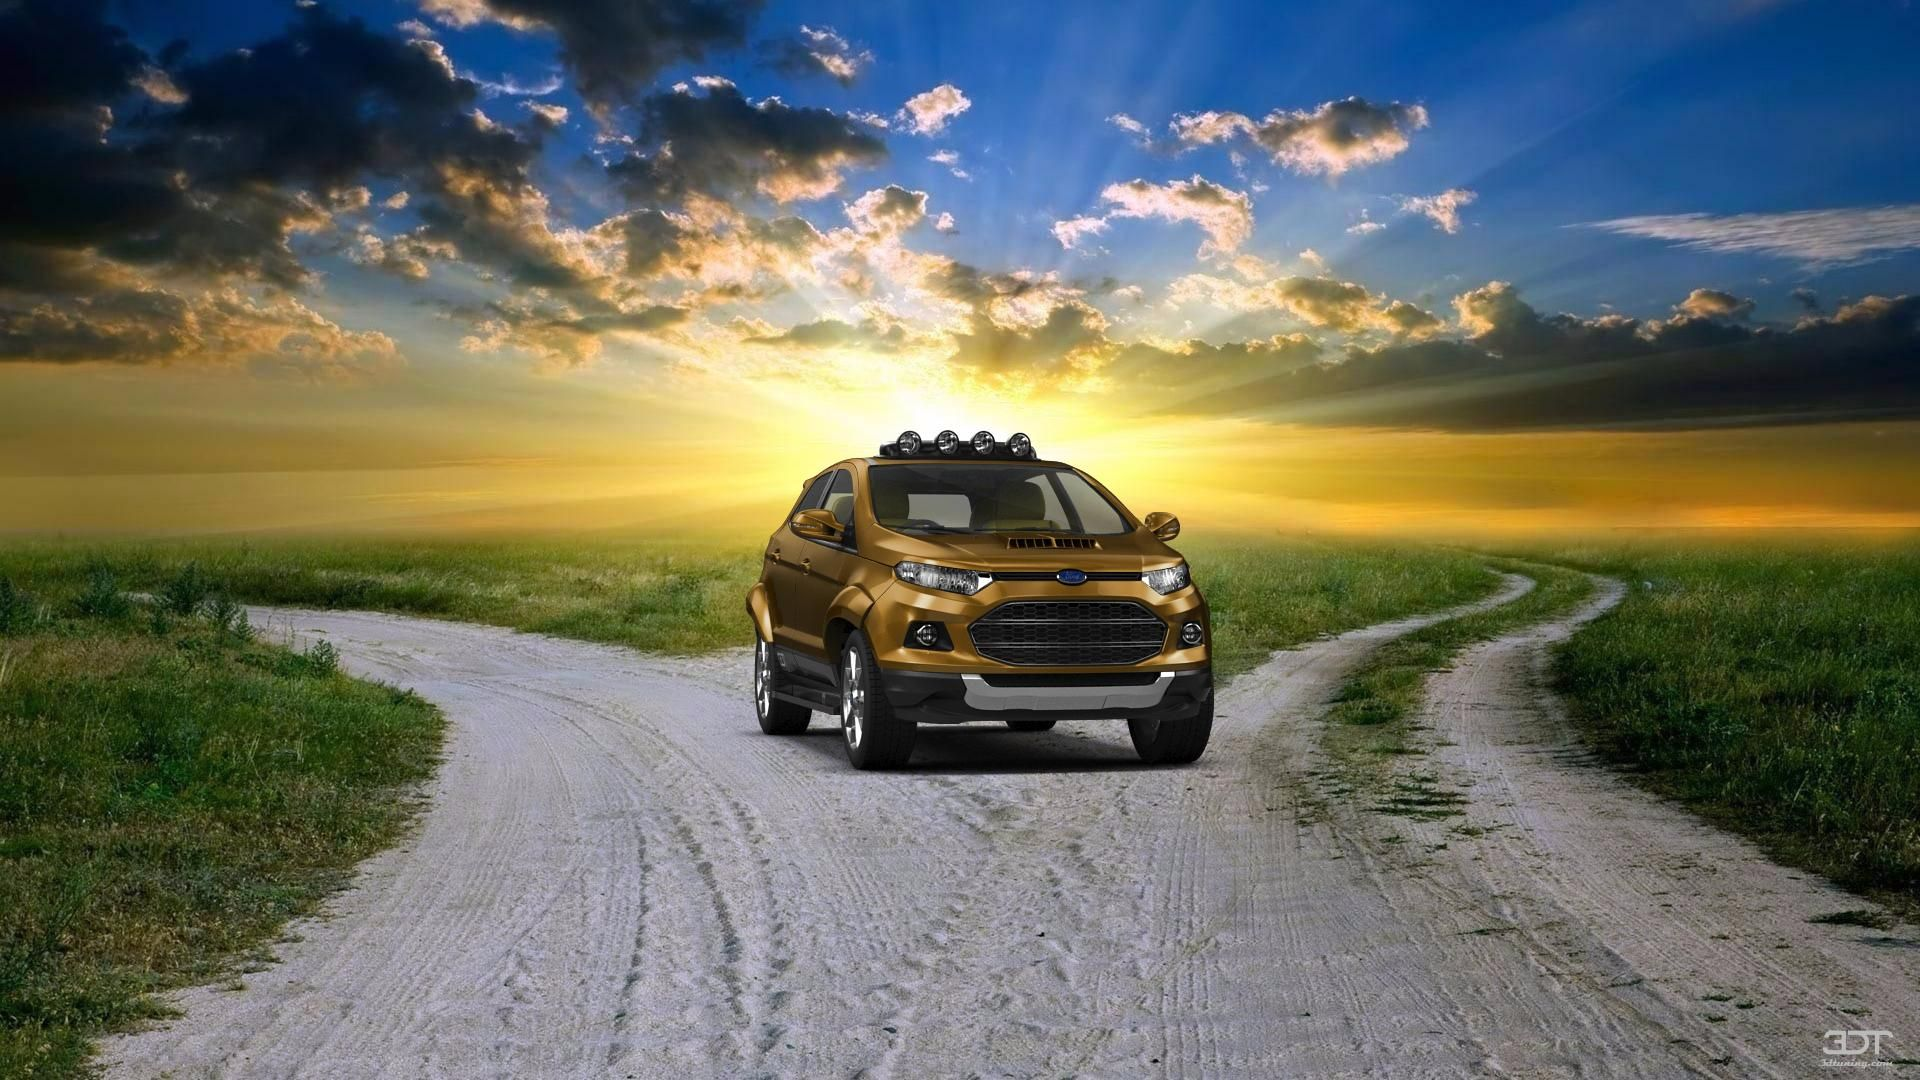 Checkout my tuning ford ecosport 2014 at 3dtuning 3dtuning tuning